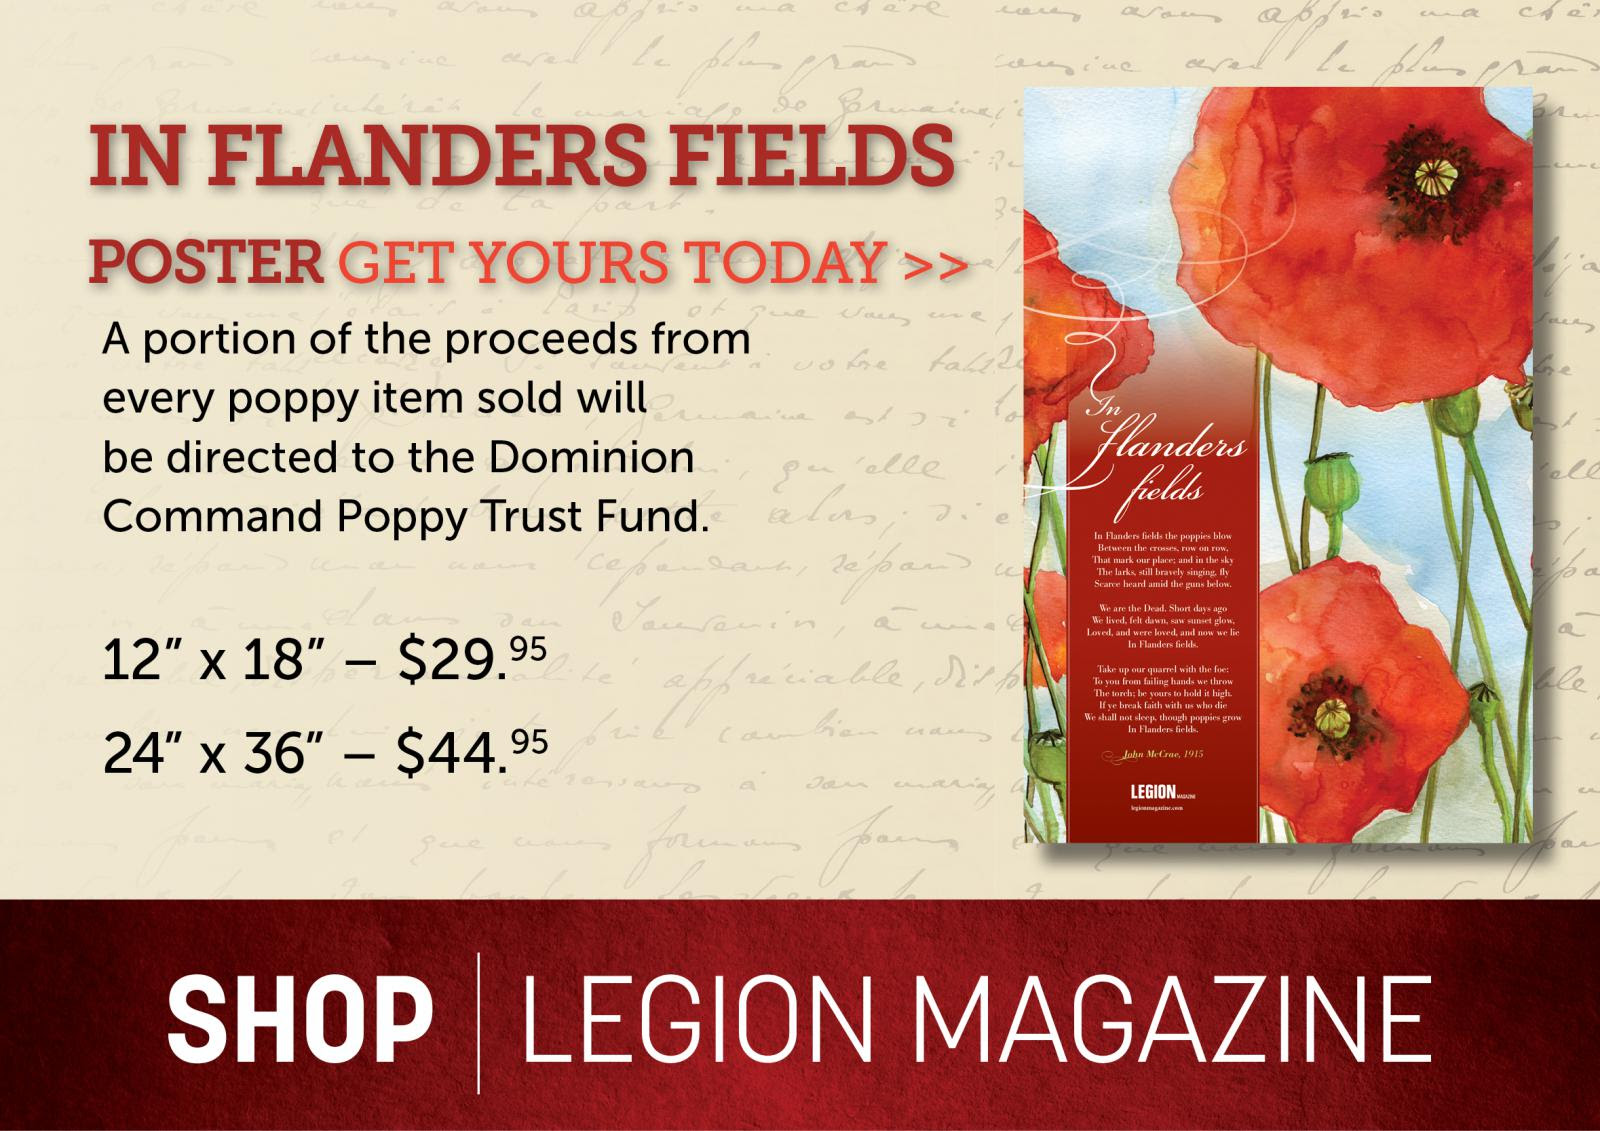 In flanders fields posters